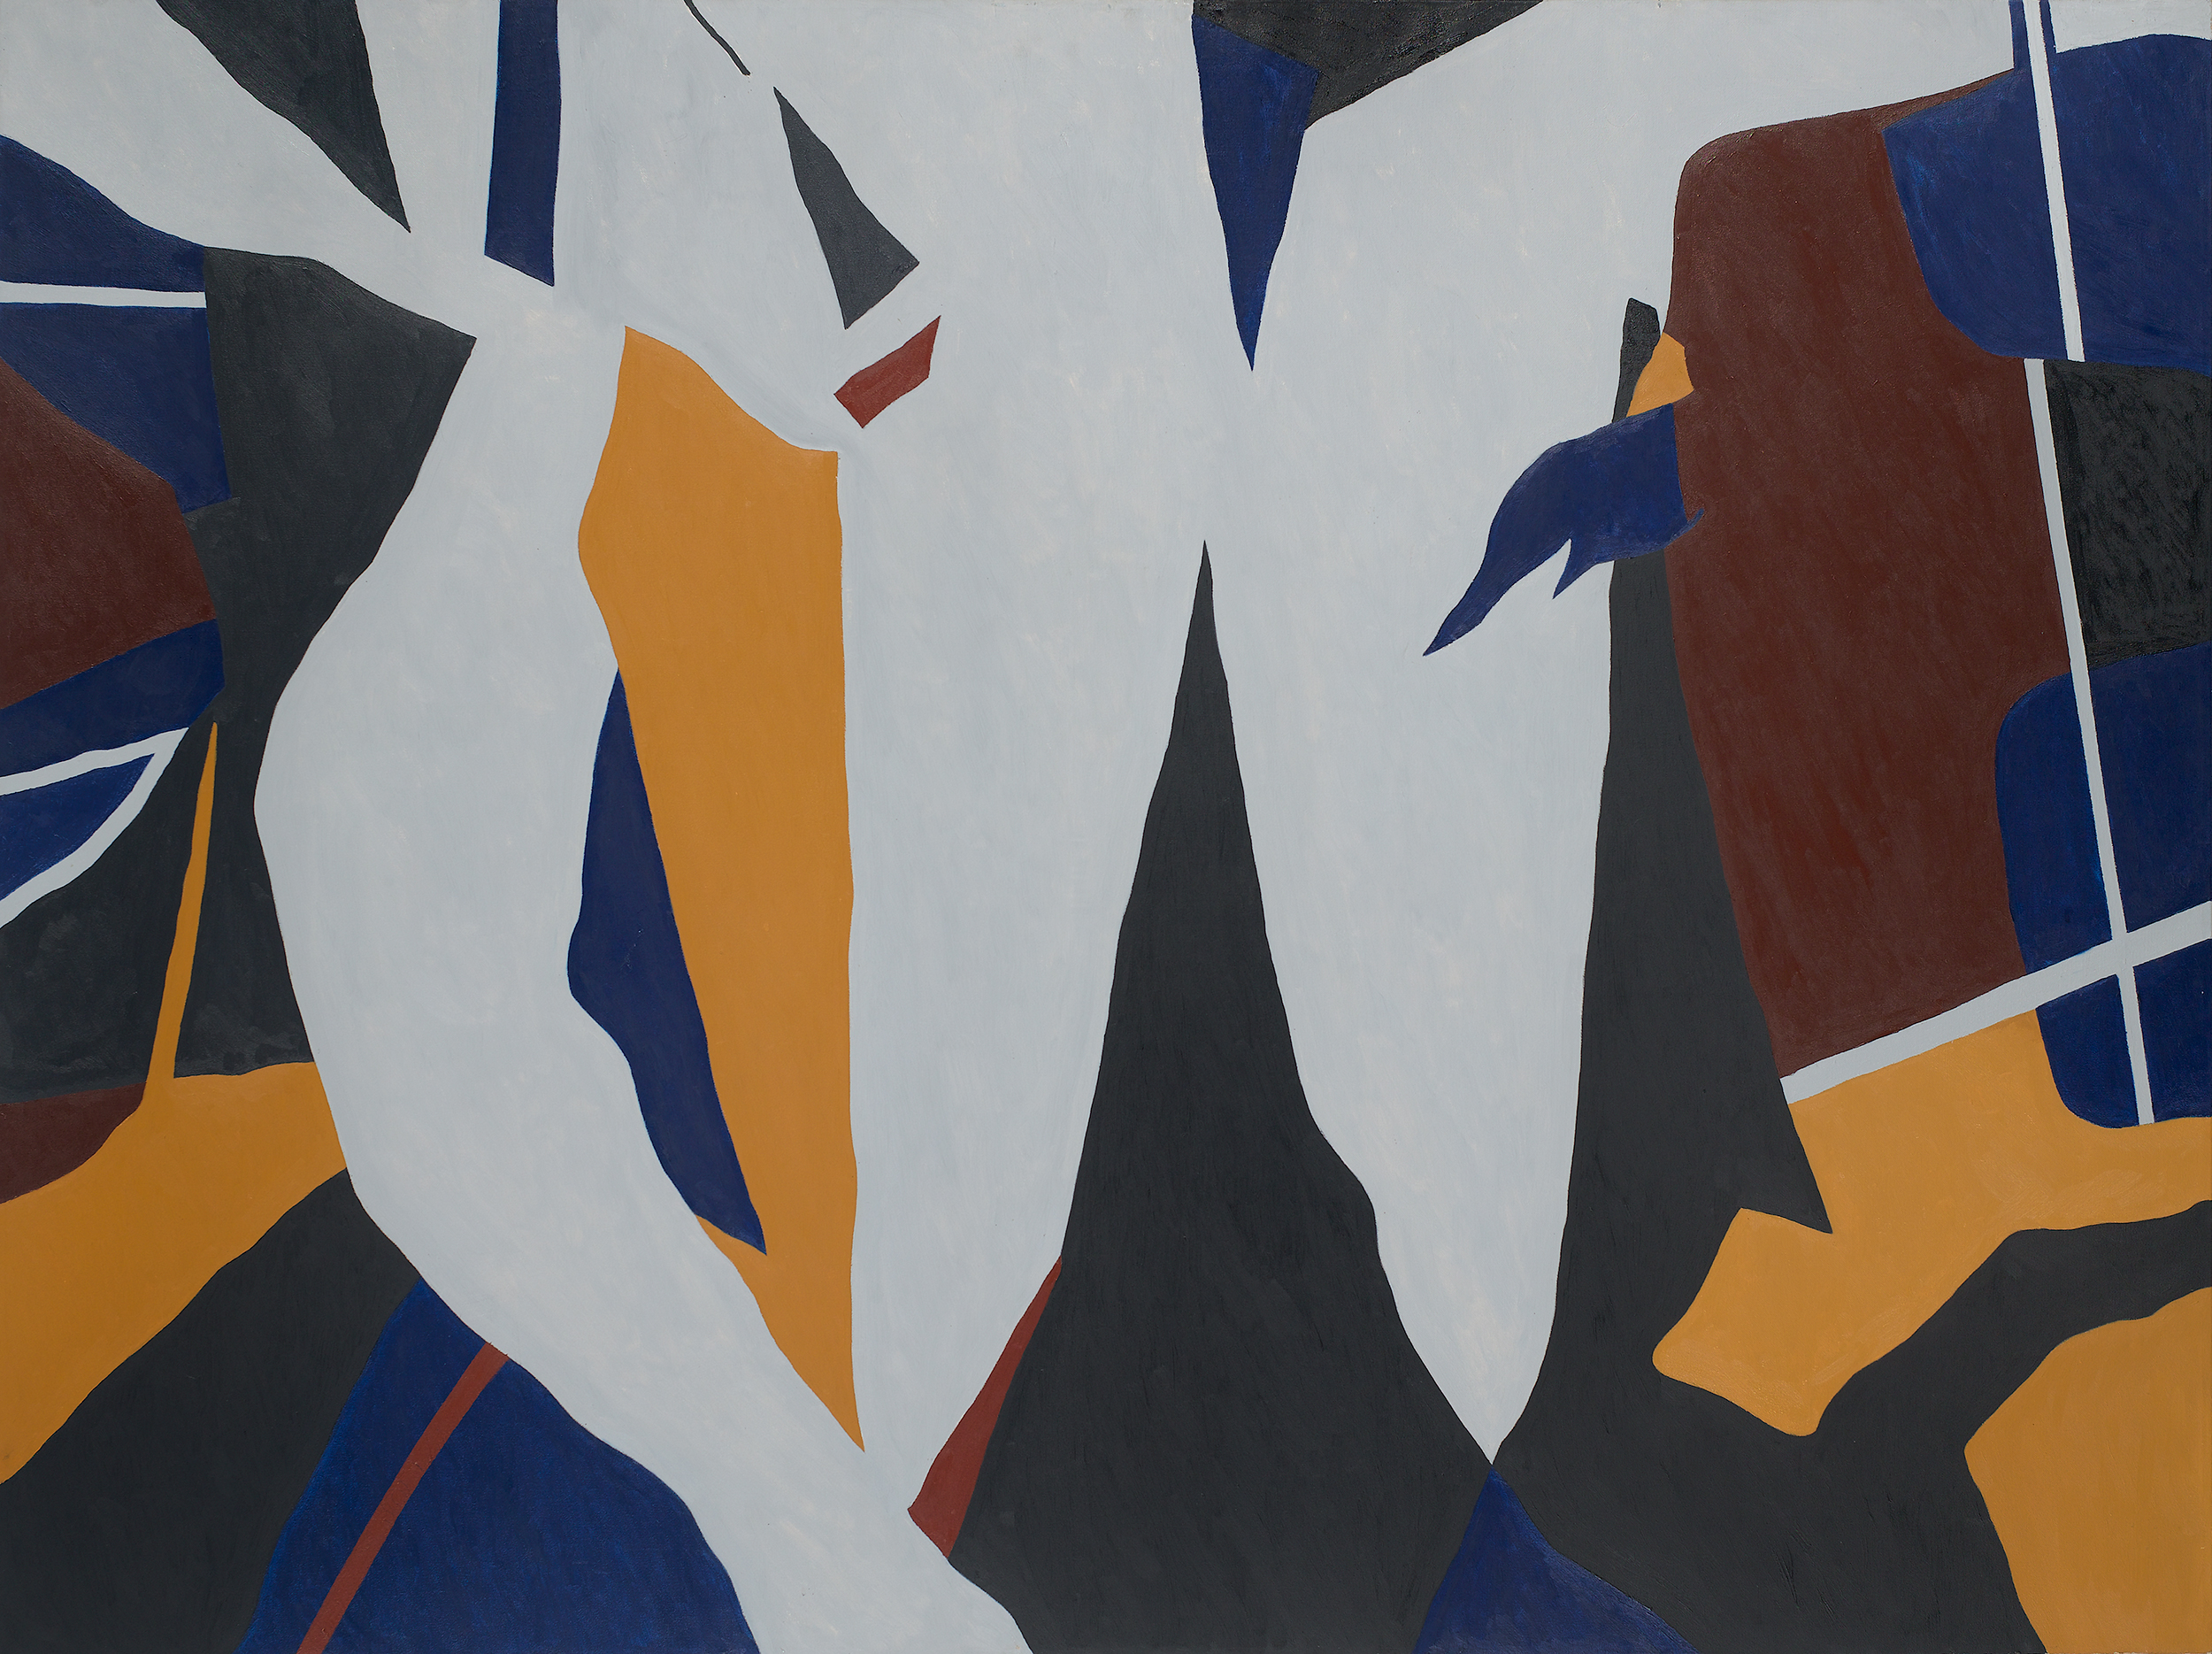 Abstract painting of torn signs and hooded penitents with uneven tears of black, blue, brown, yellow and white.